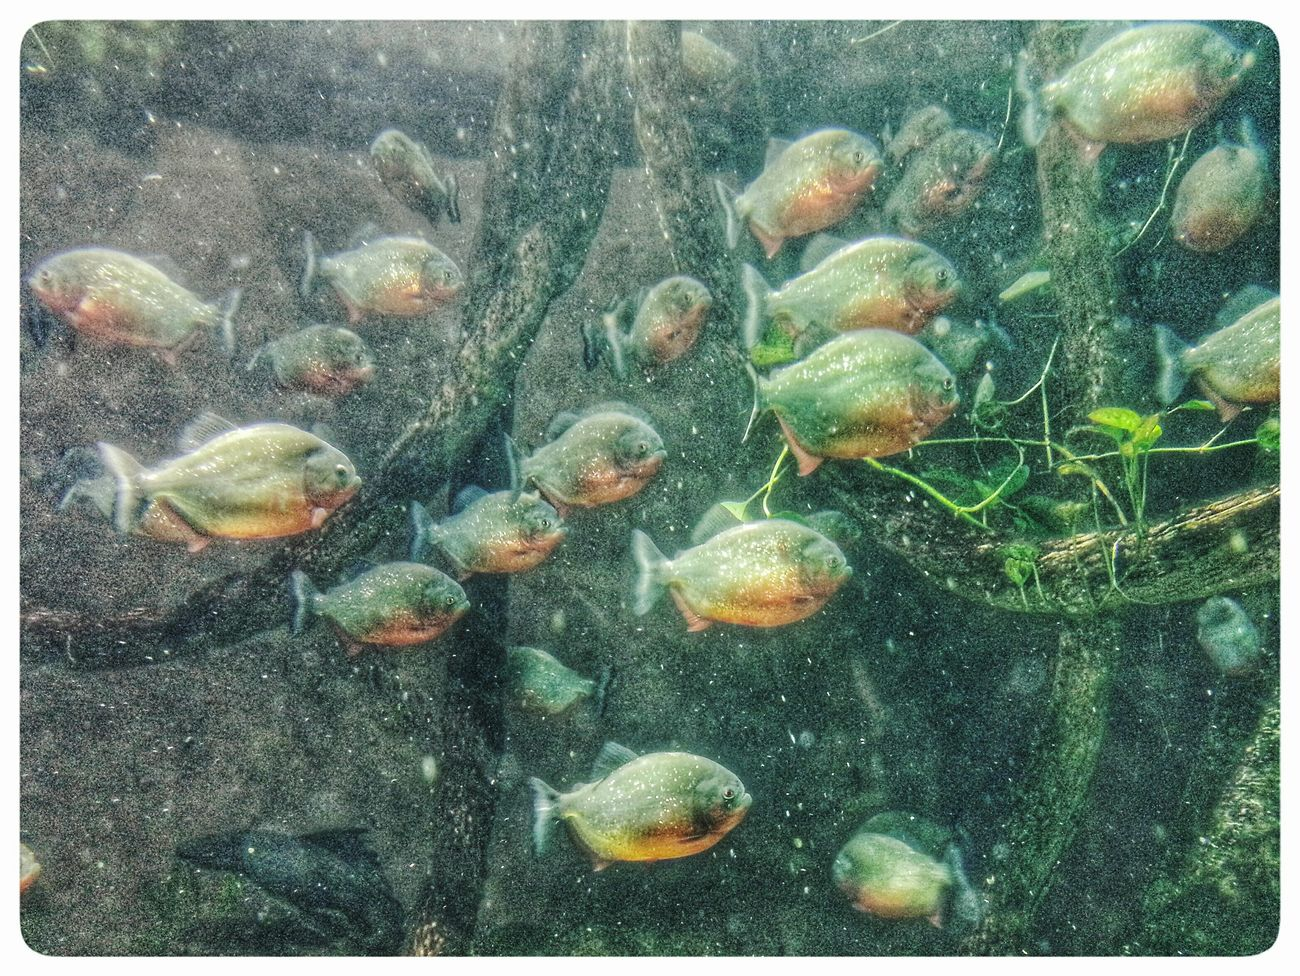 Piranha s at Acquario Di Genova. Through The Window Fish Underwater Animal Themes No People Swimming Nature Full Frame Large Group Of Animals Water Indoors  Fish Tank Genova. Voracious Smartphone Photography Note 2 Eyeem Edit